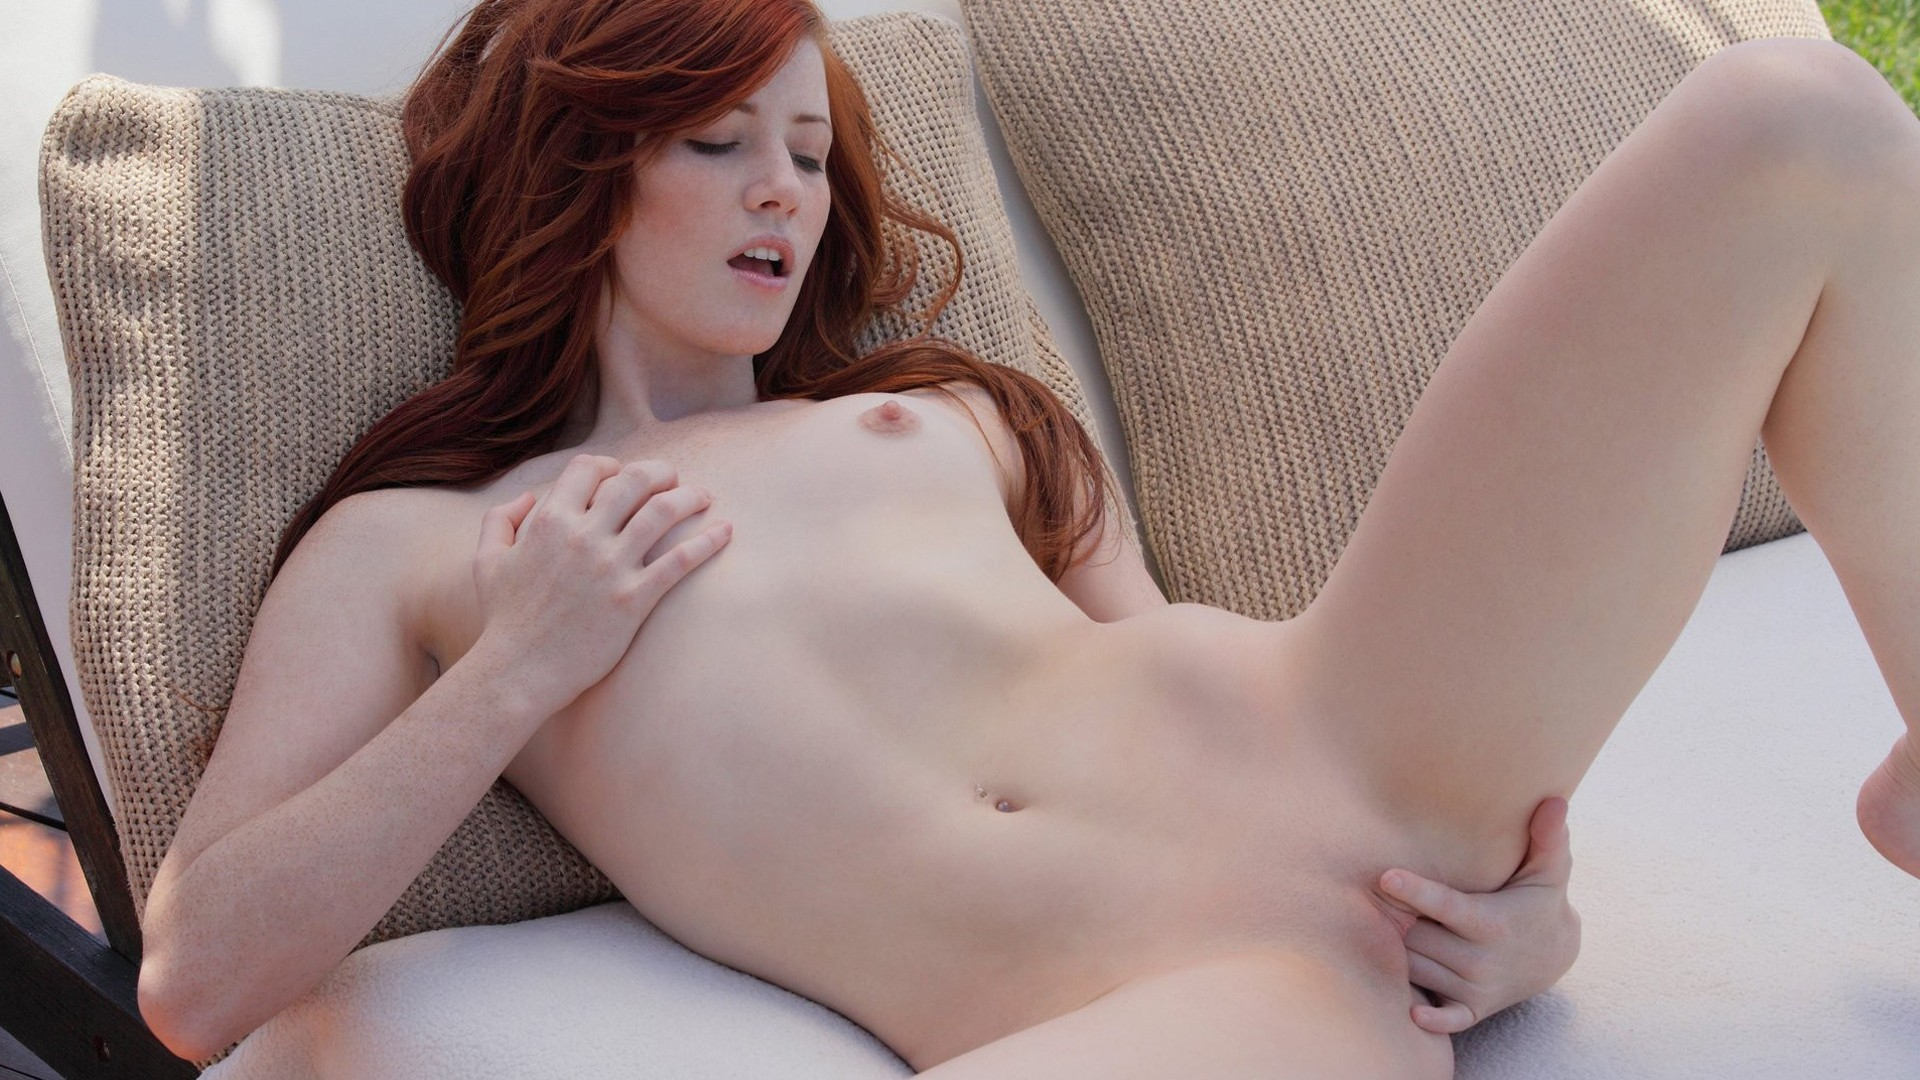 Speaking, would pale redhead spread nude legs for